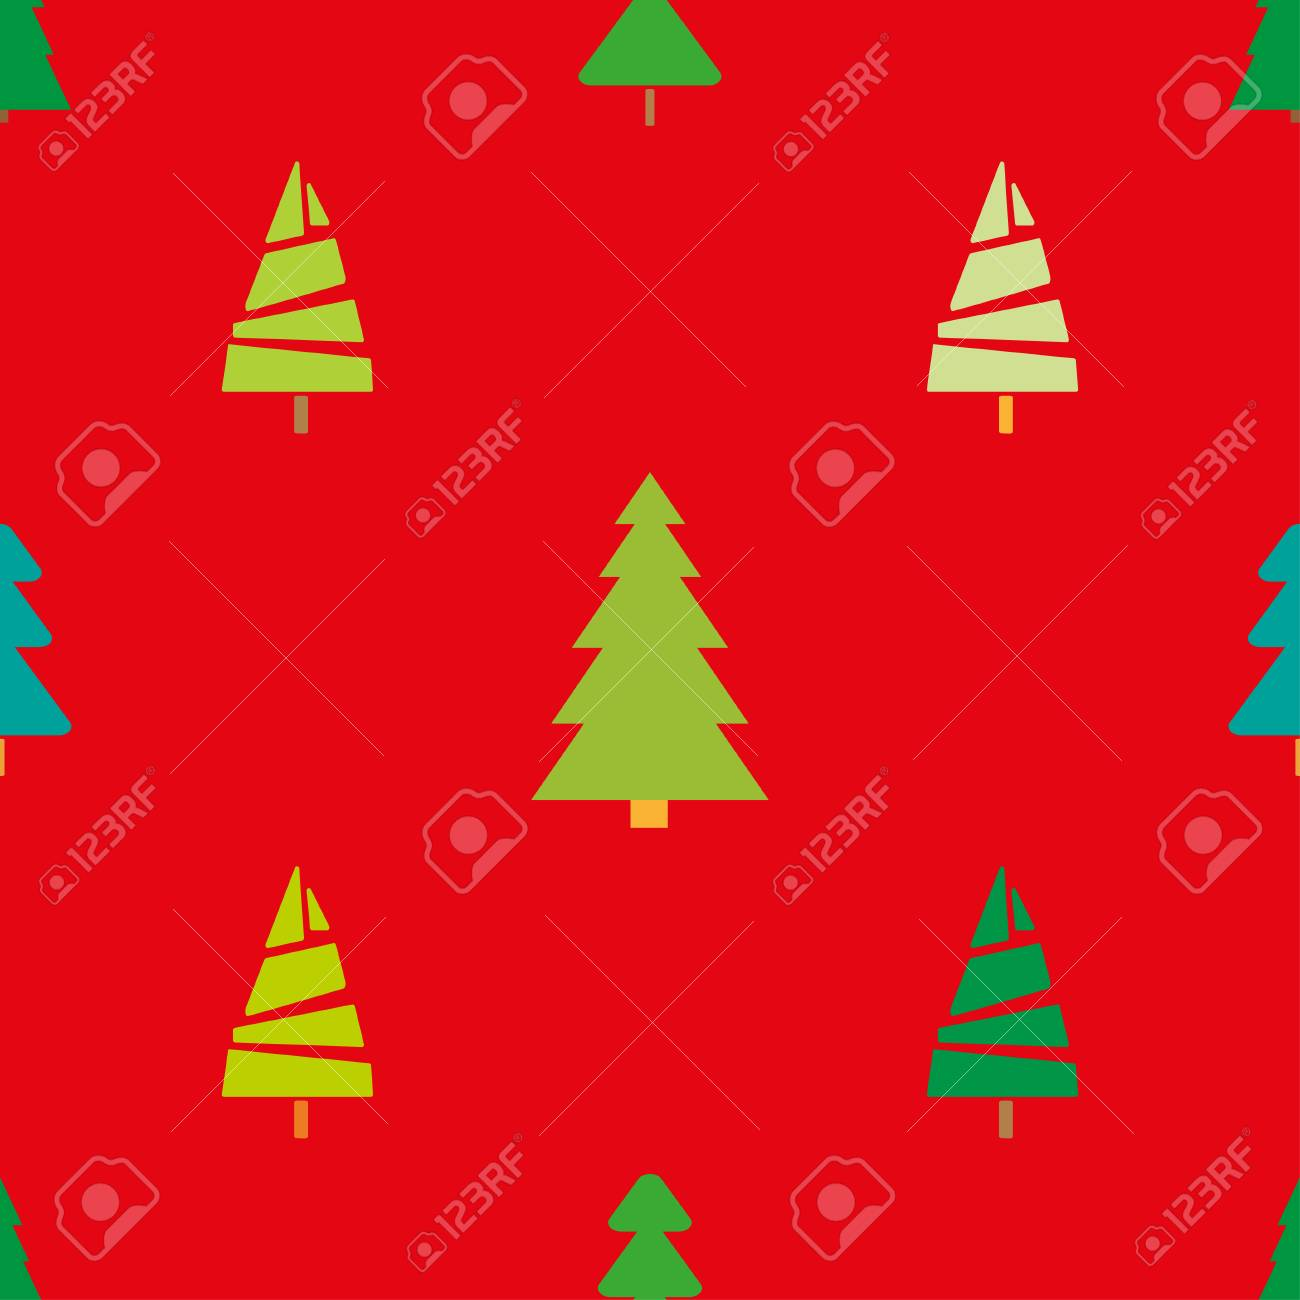 seamless pattern with christmas trees. abstract geometric wallpaper